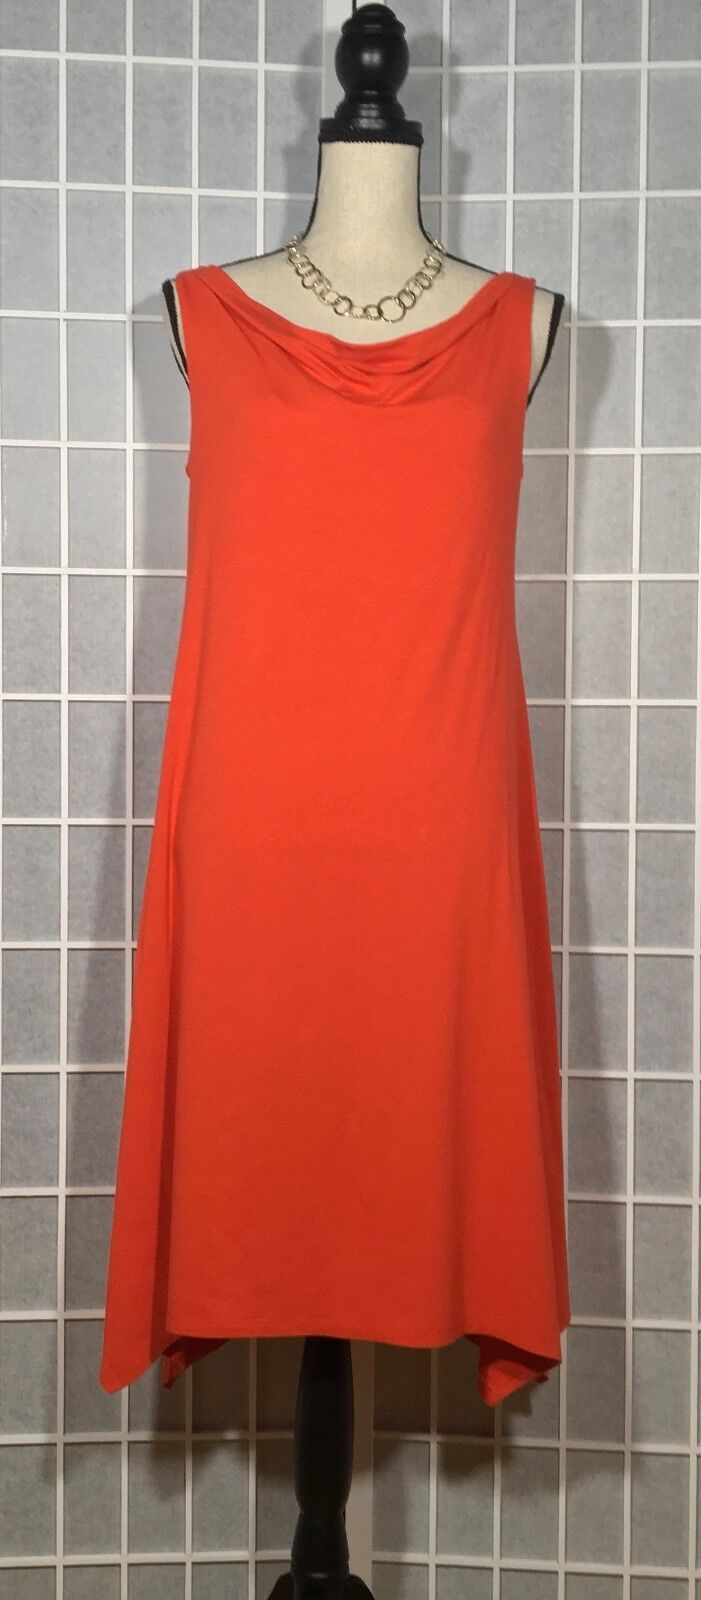 EILEEN FISHER WOMEN'S SLEEVELESS HIGH-LOW HEM DRESS SMALL S SOLID RED